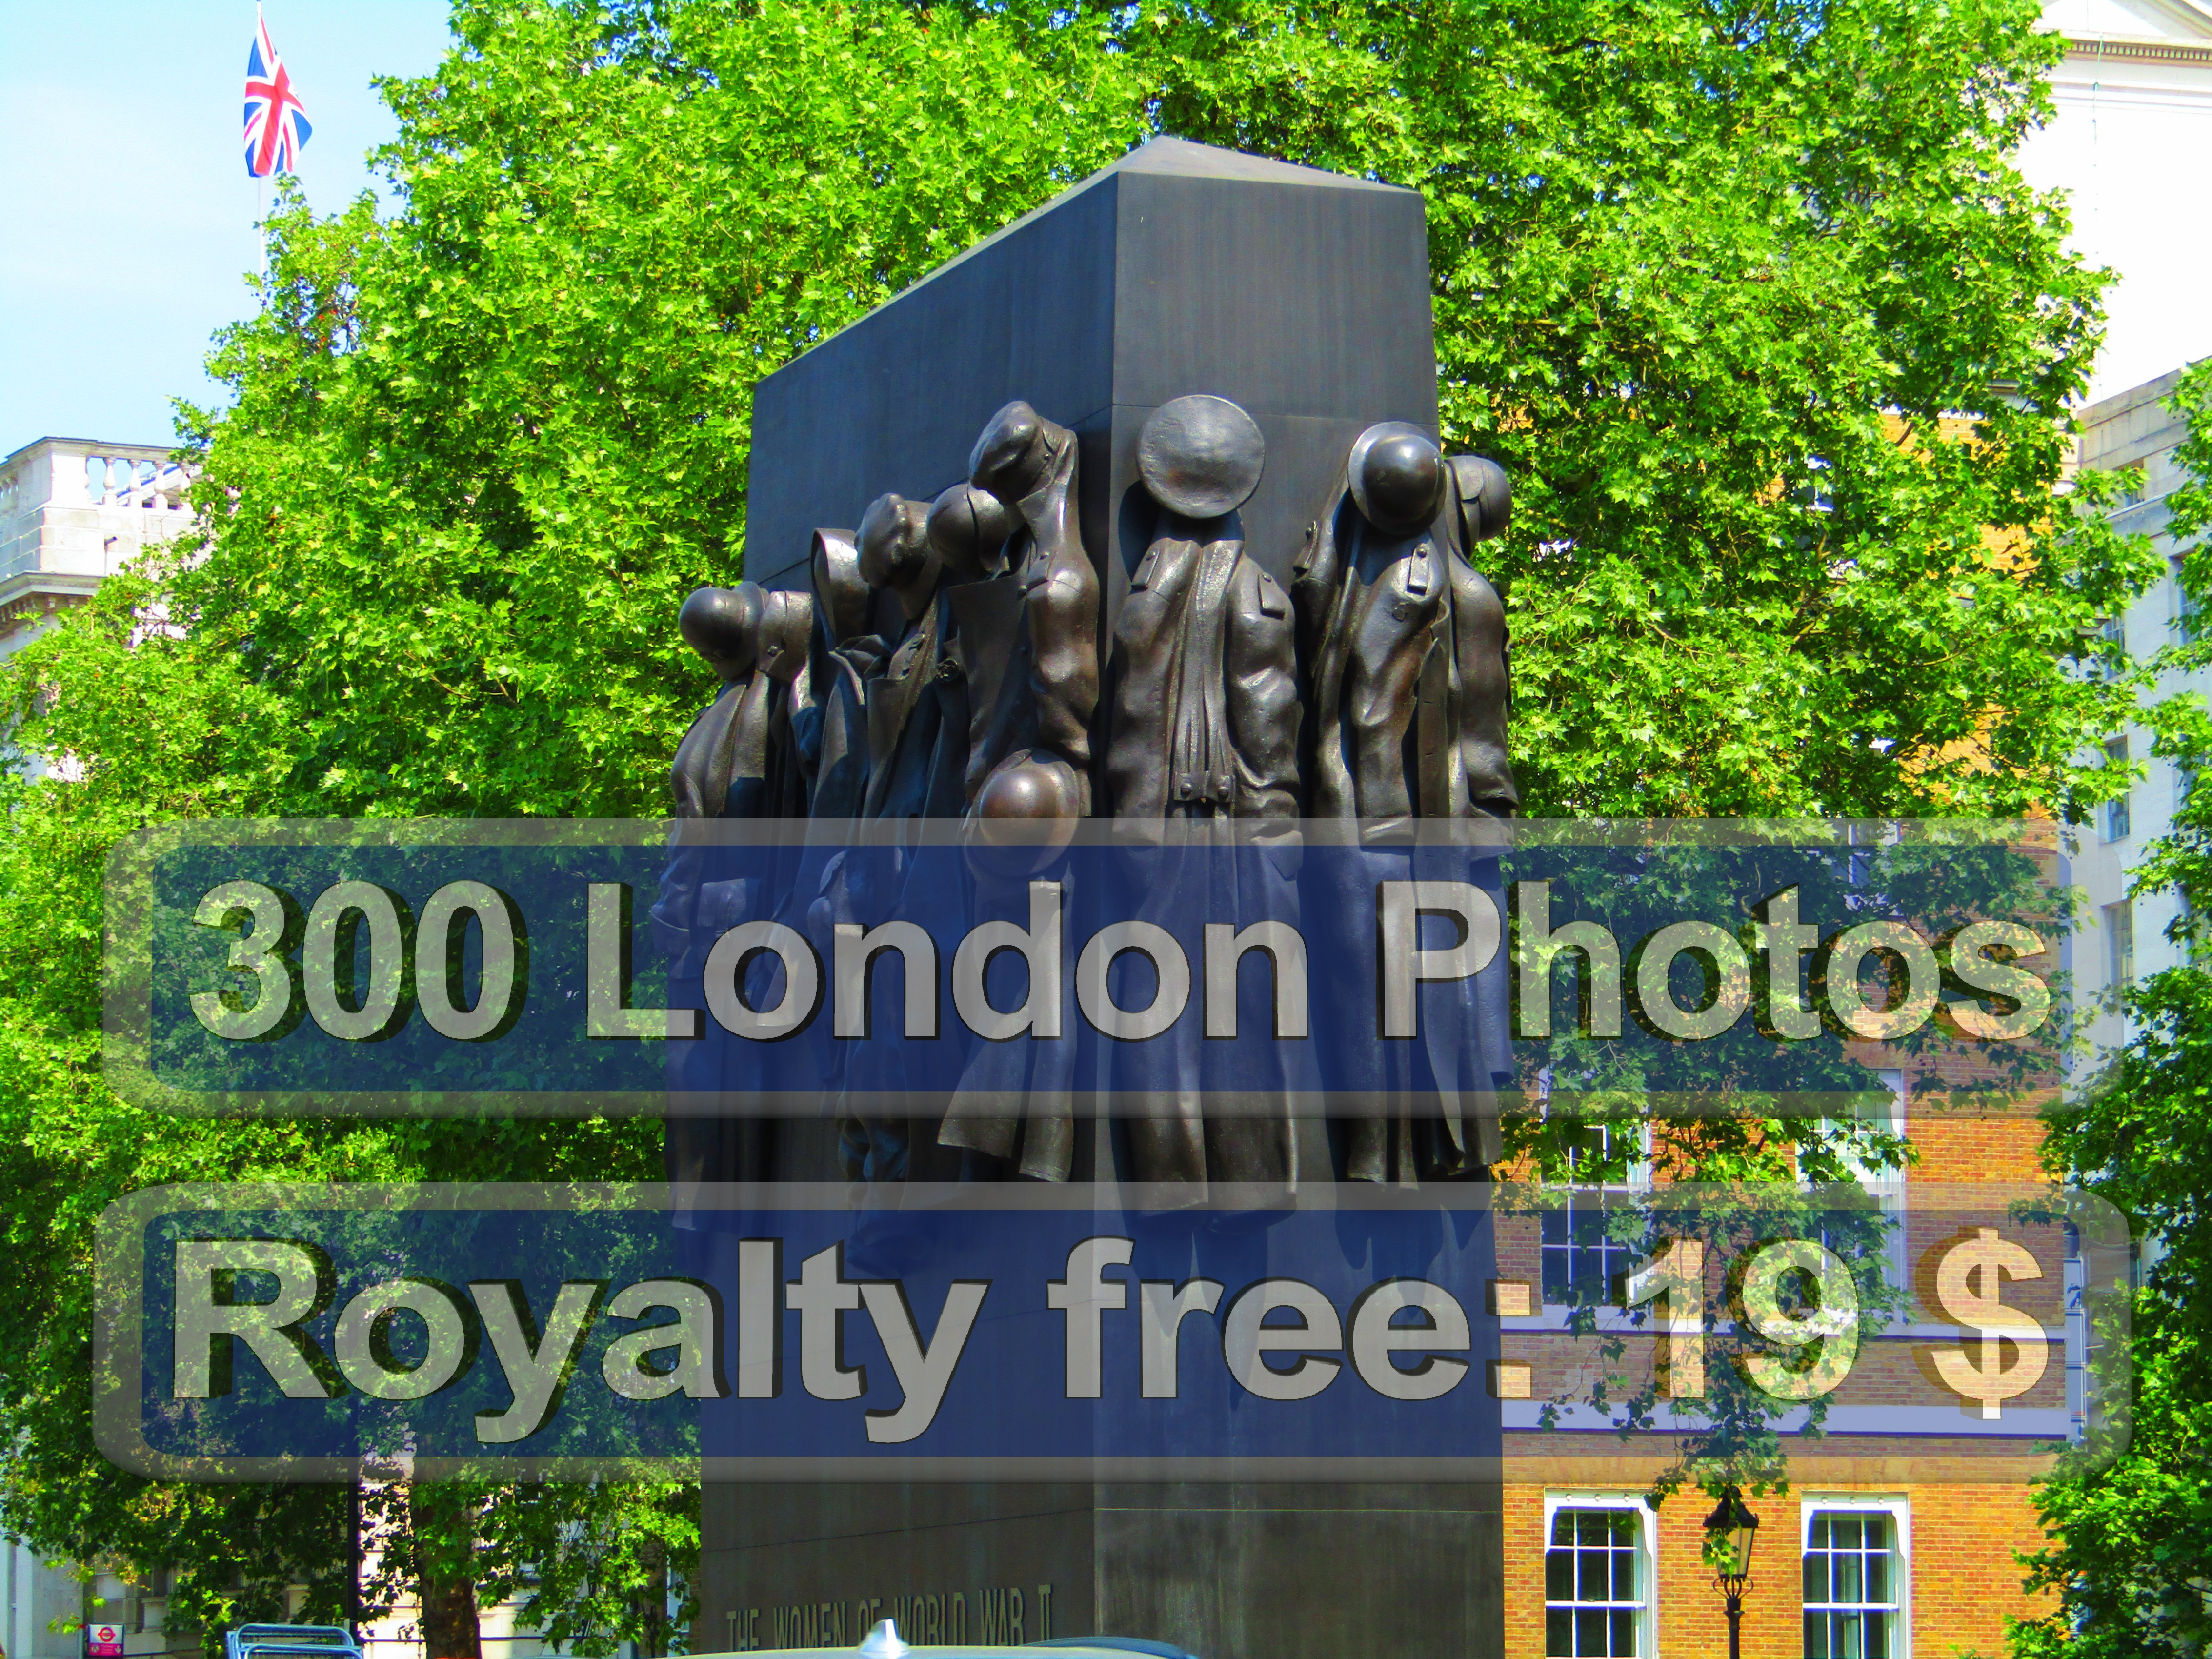 Tower Of London Photography Rules